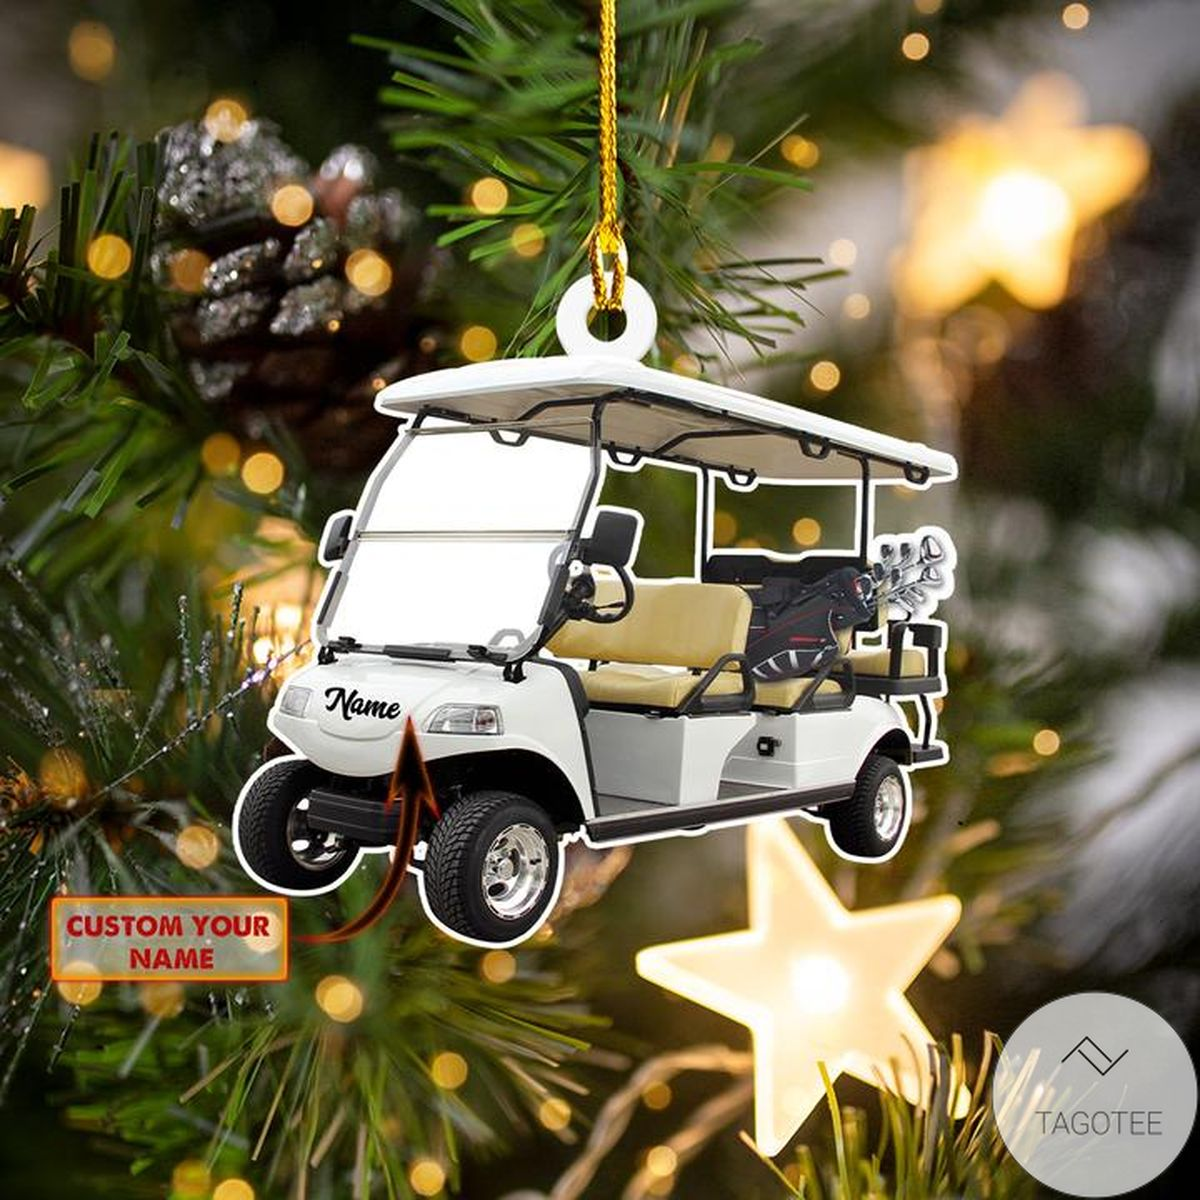 Personalized Golf Cart Ornament